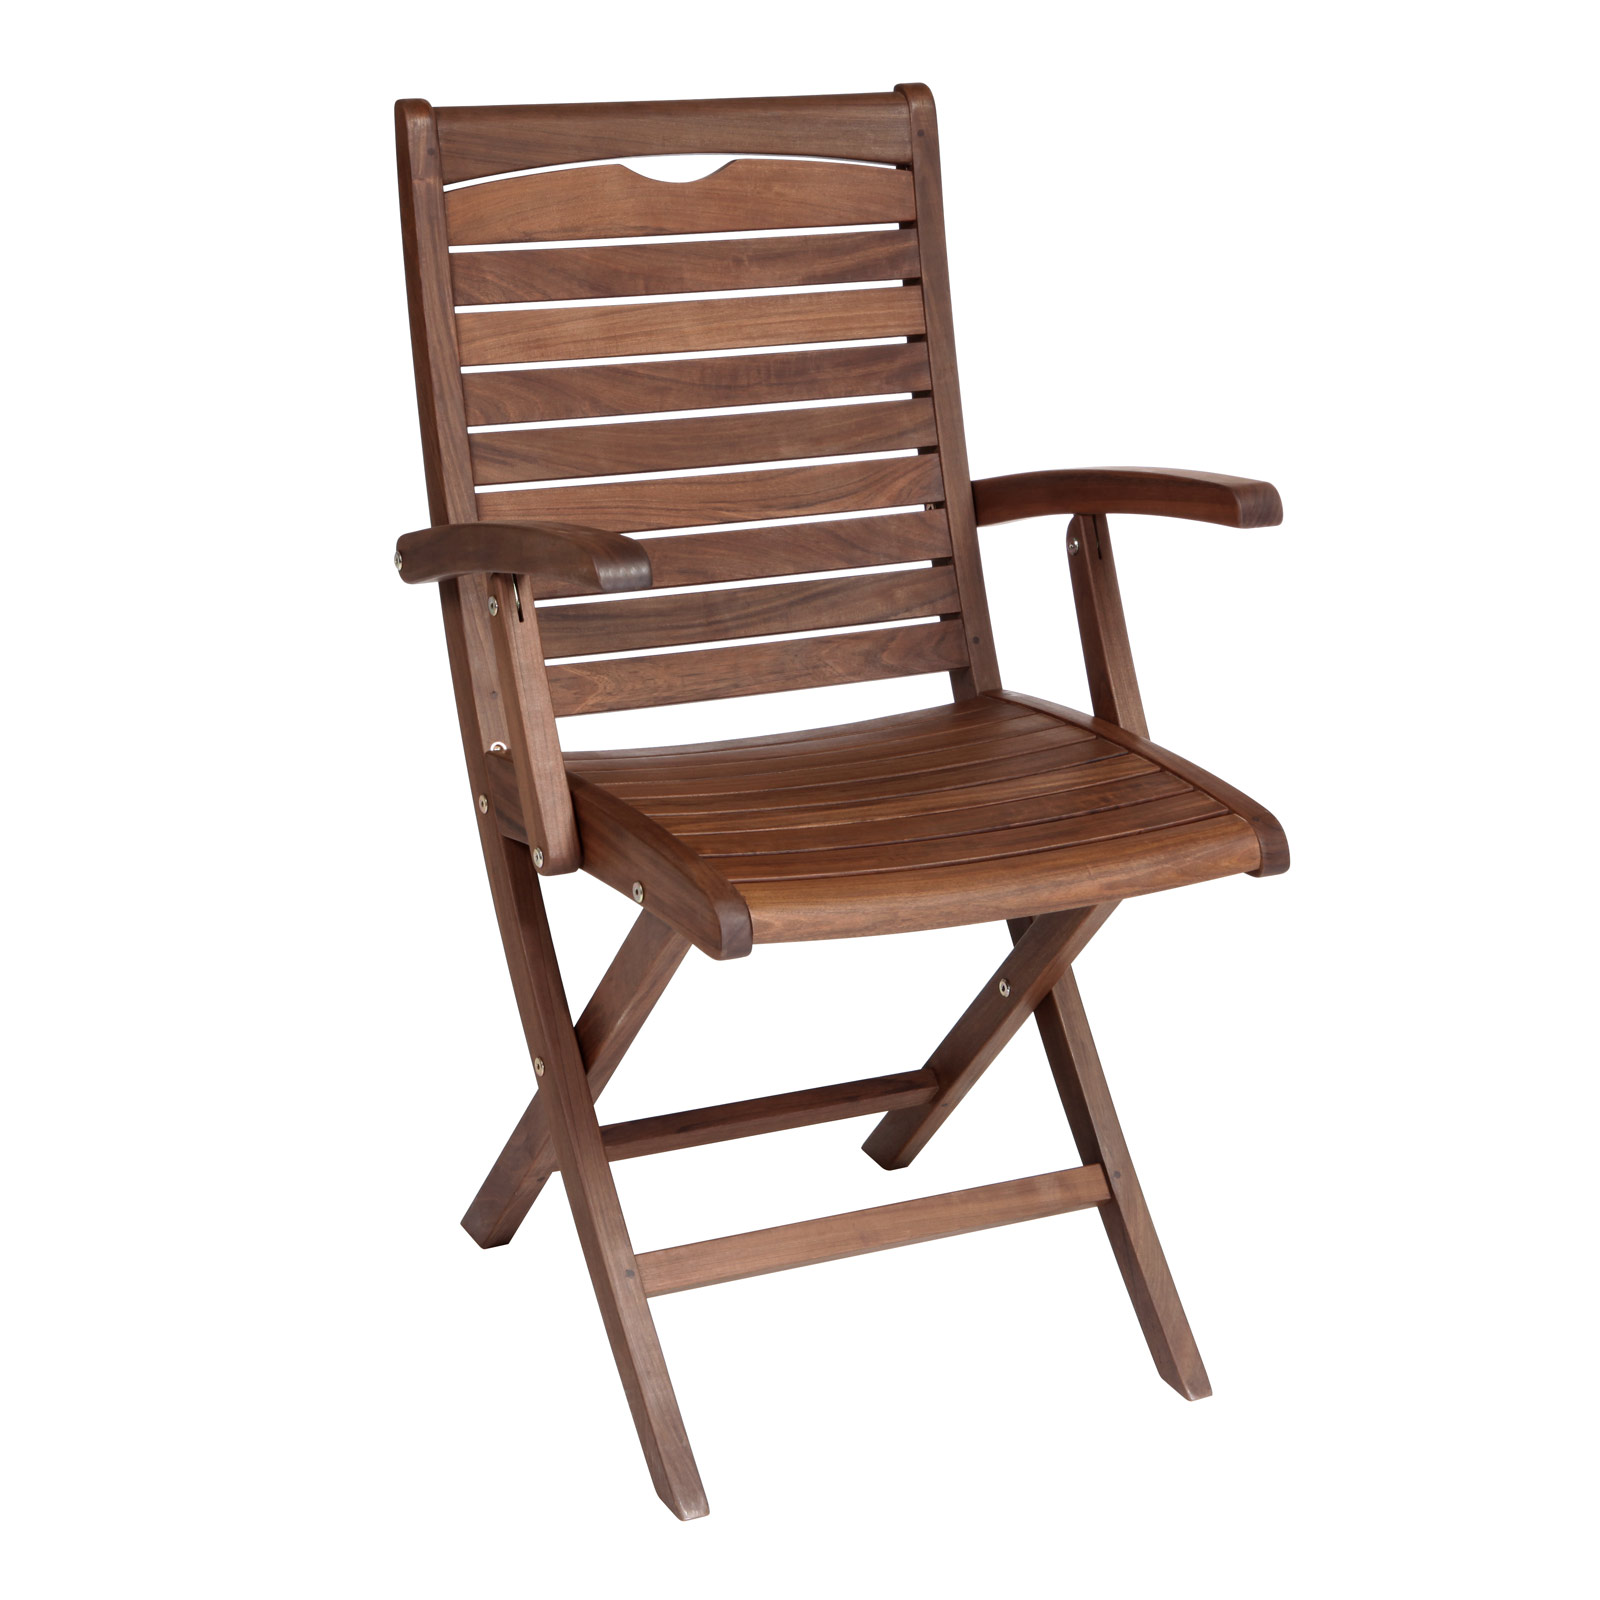 Patio Folding Chairs Milgreen Patio Furniture Ipe Topaz Folding Chair 6238 Milgreen